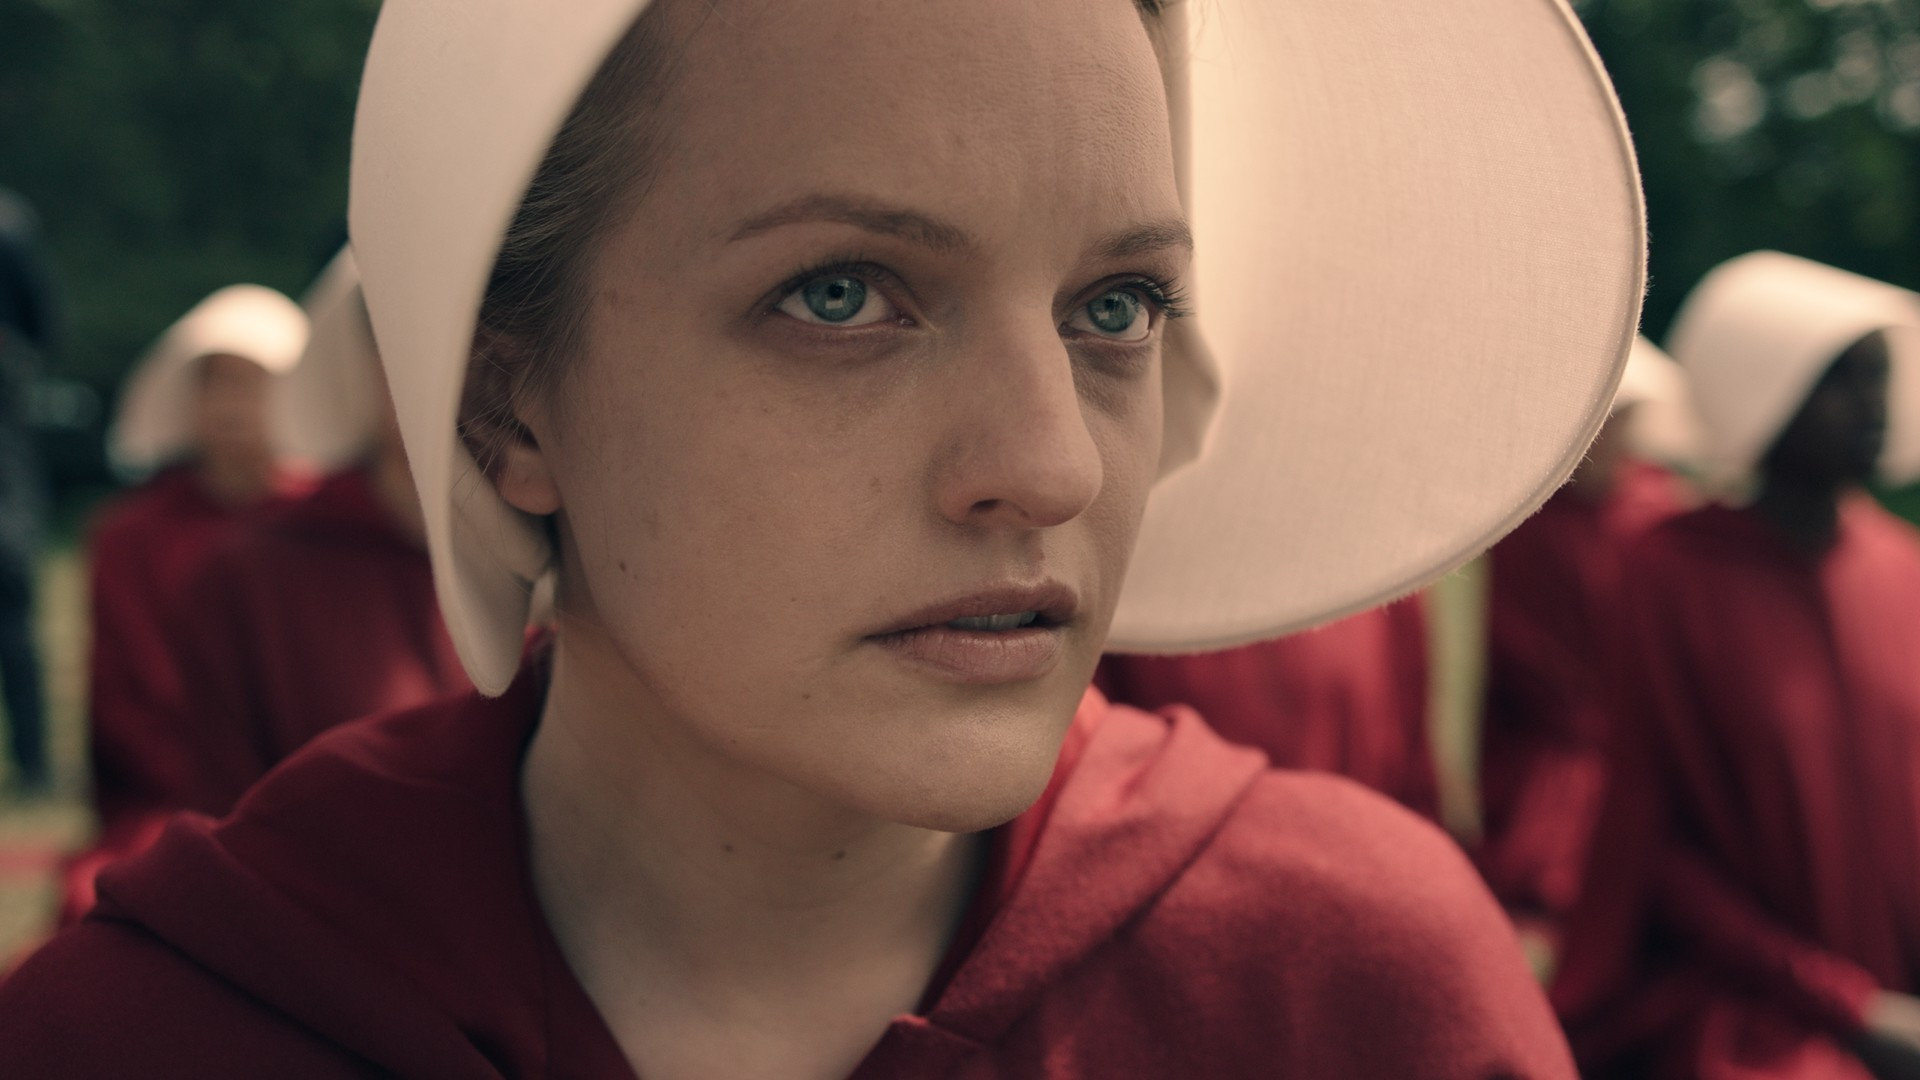 The Handmaid's Tale' Episode 2 recap: Birth Day parties and Scrabble